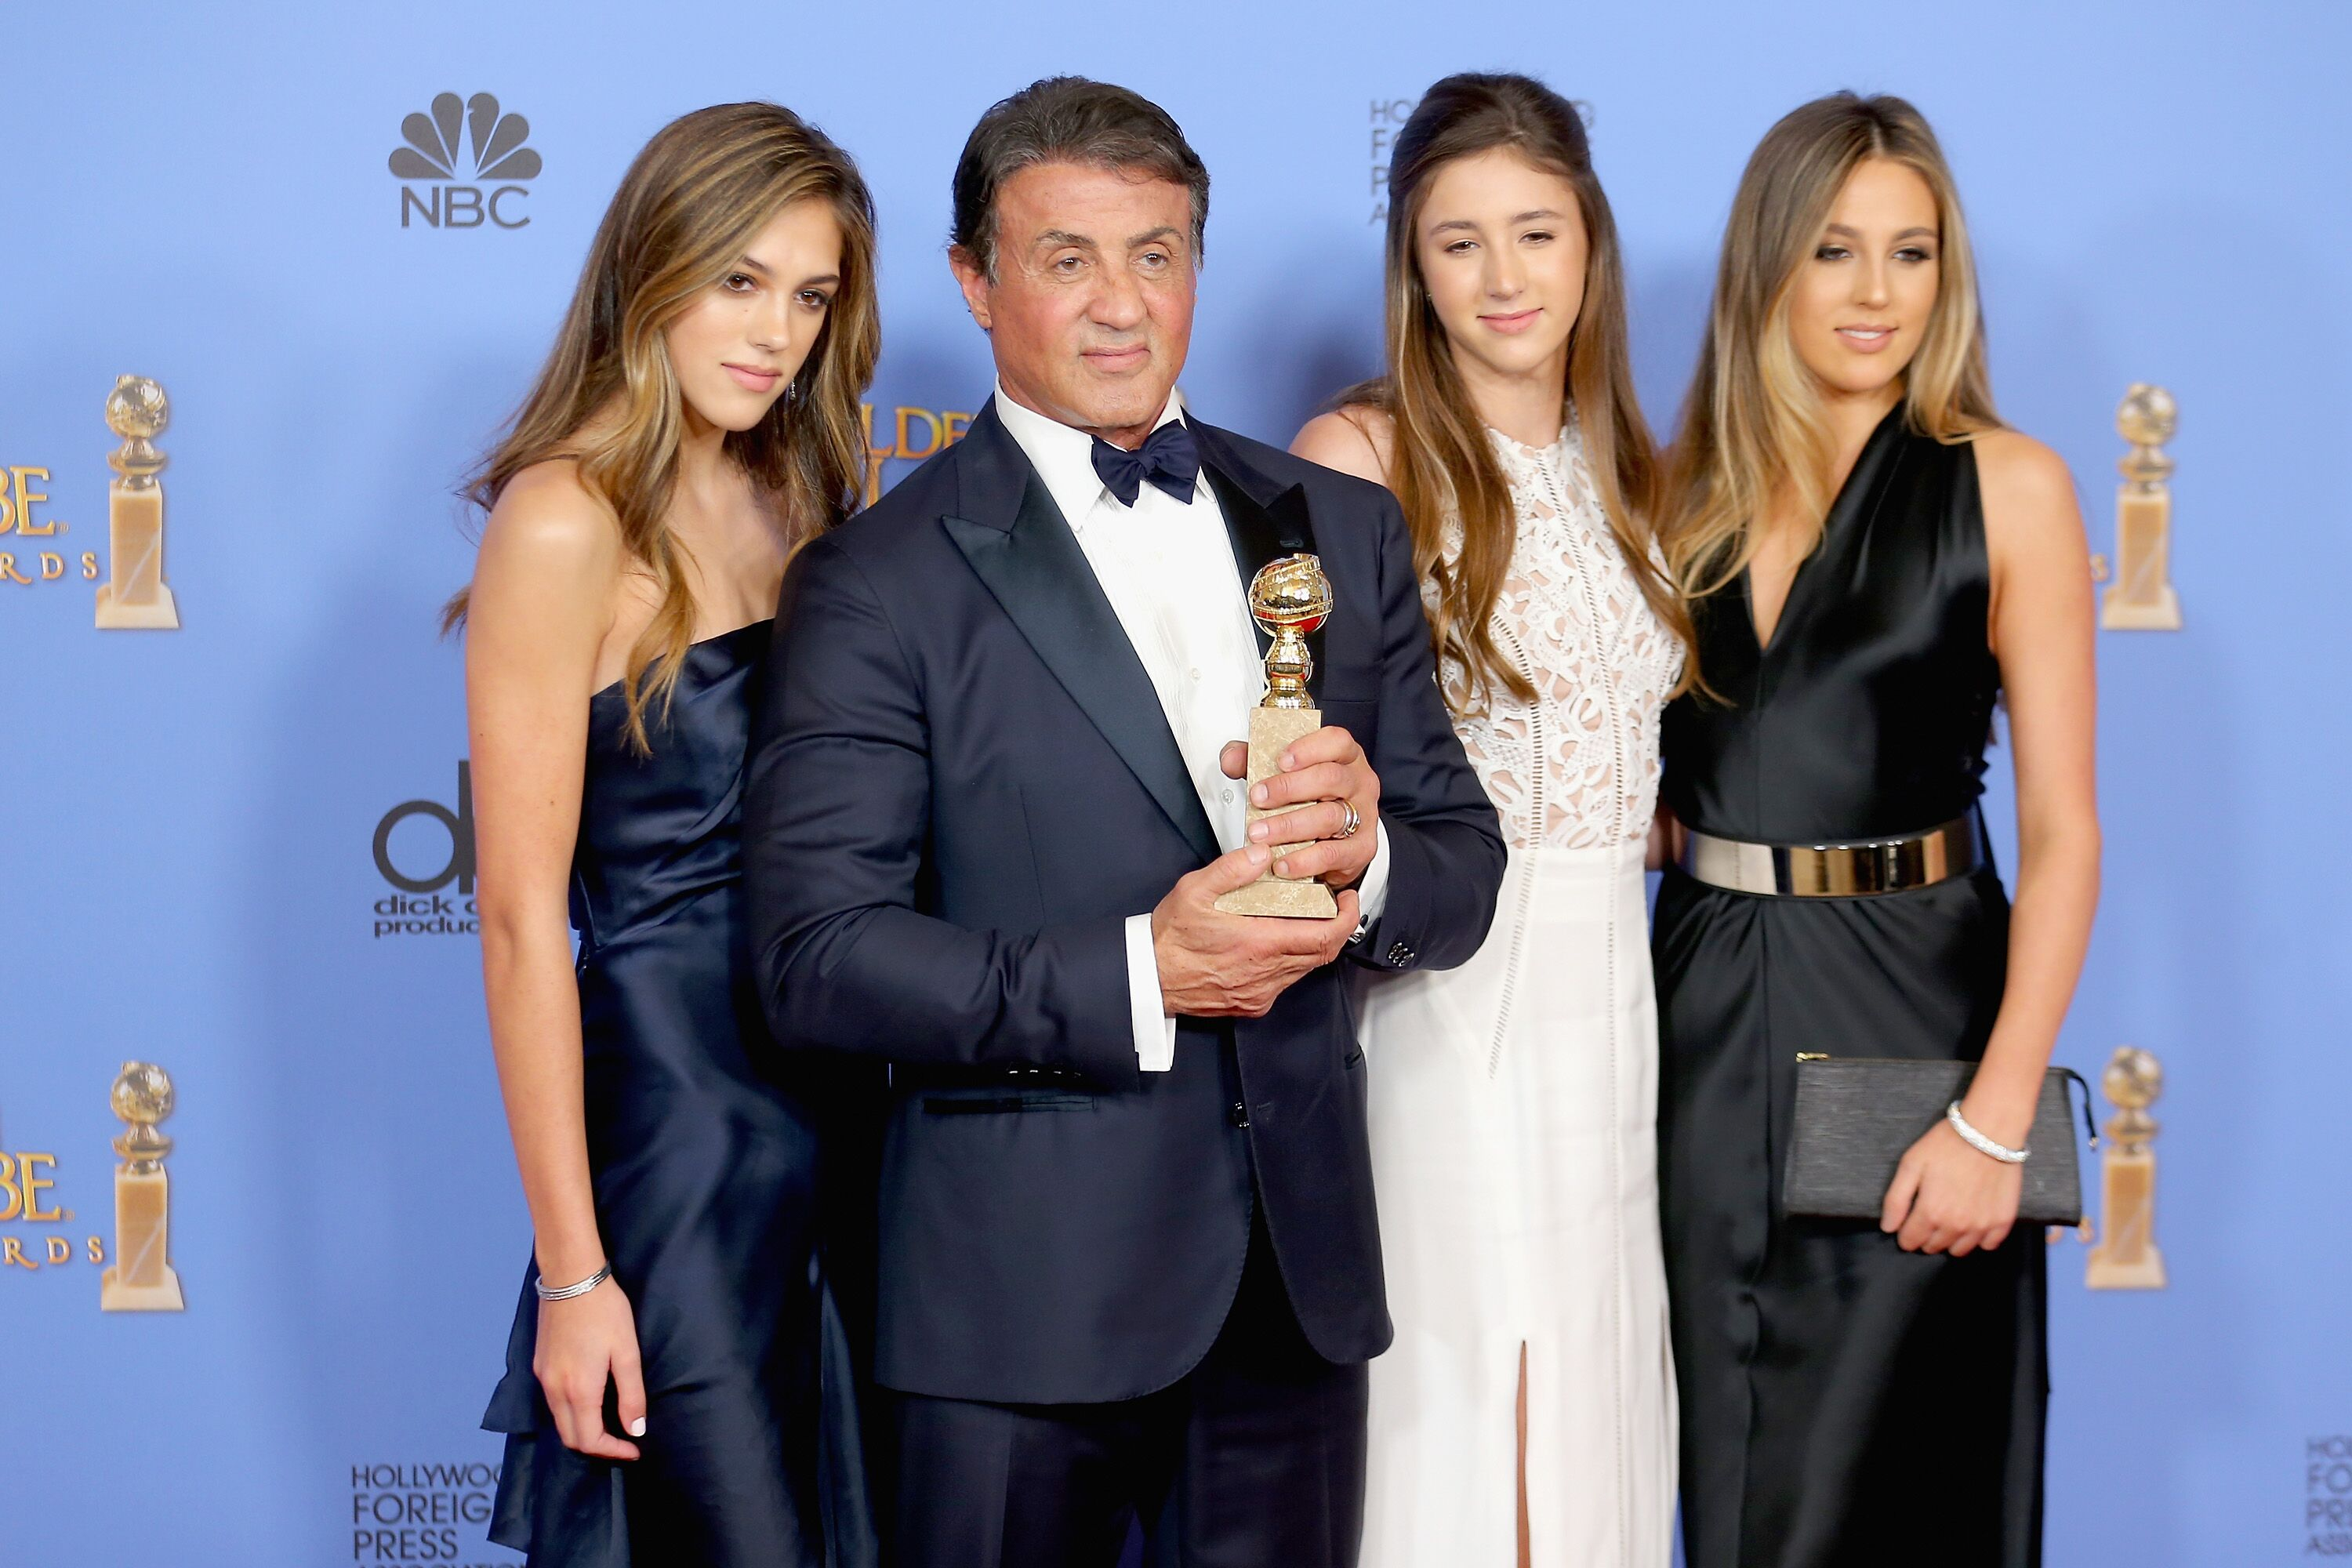 Sylvester Stallone with his daughters Sistine, Sophia and Scarlet at the 73rd Annual Golden Globes | Getty Images